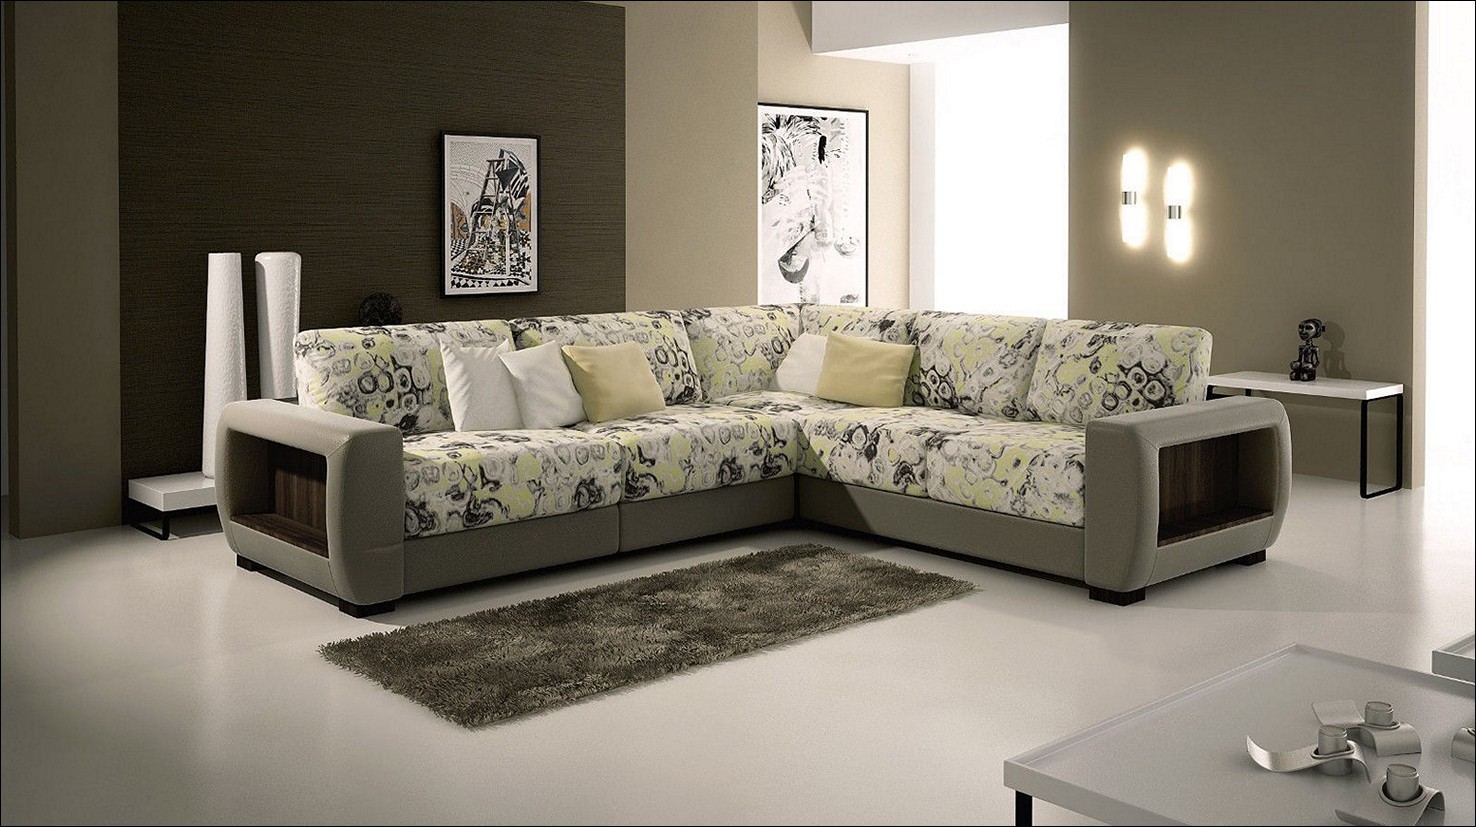 decorating ideas in living room paint color green wallpapers for design uk classy wallpaper